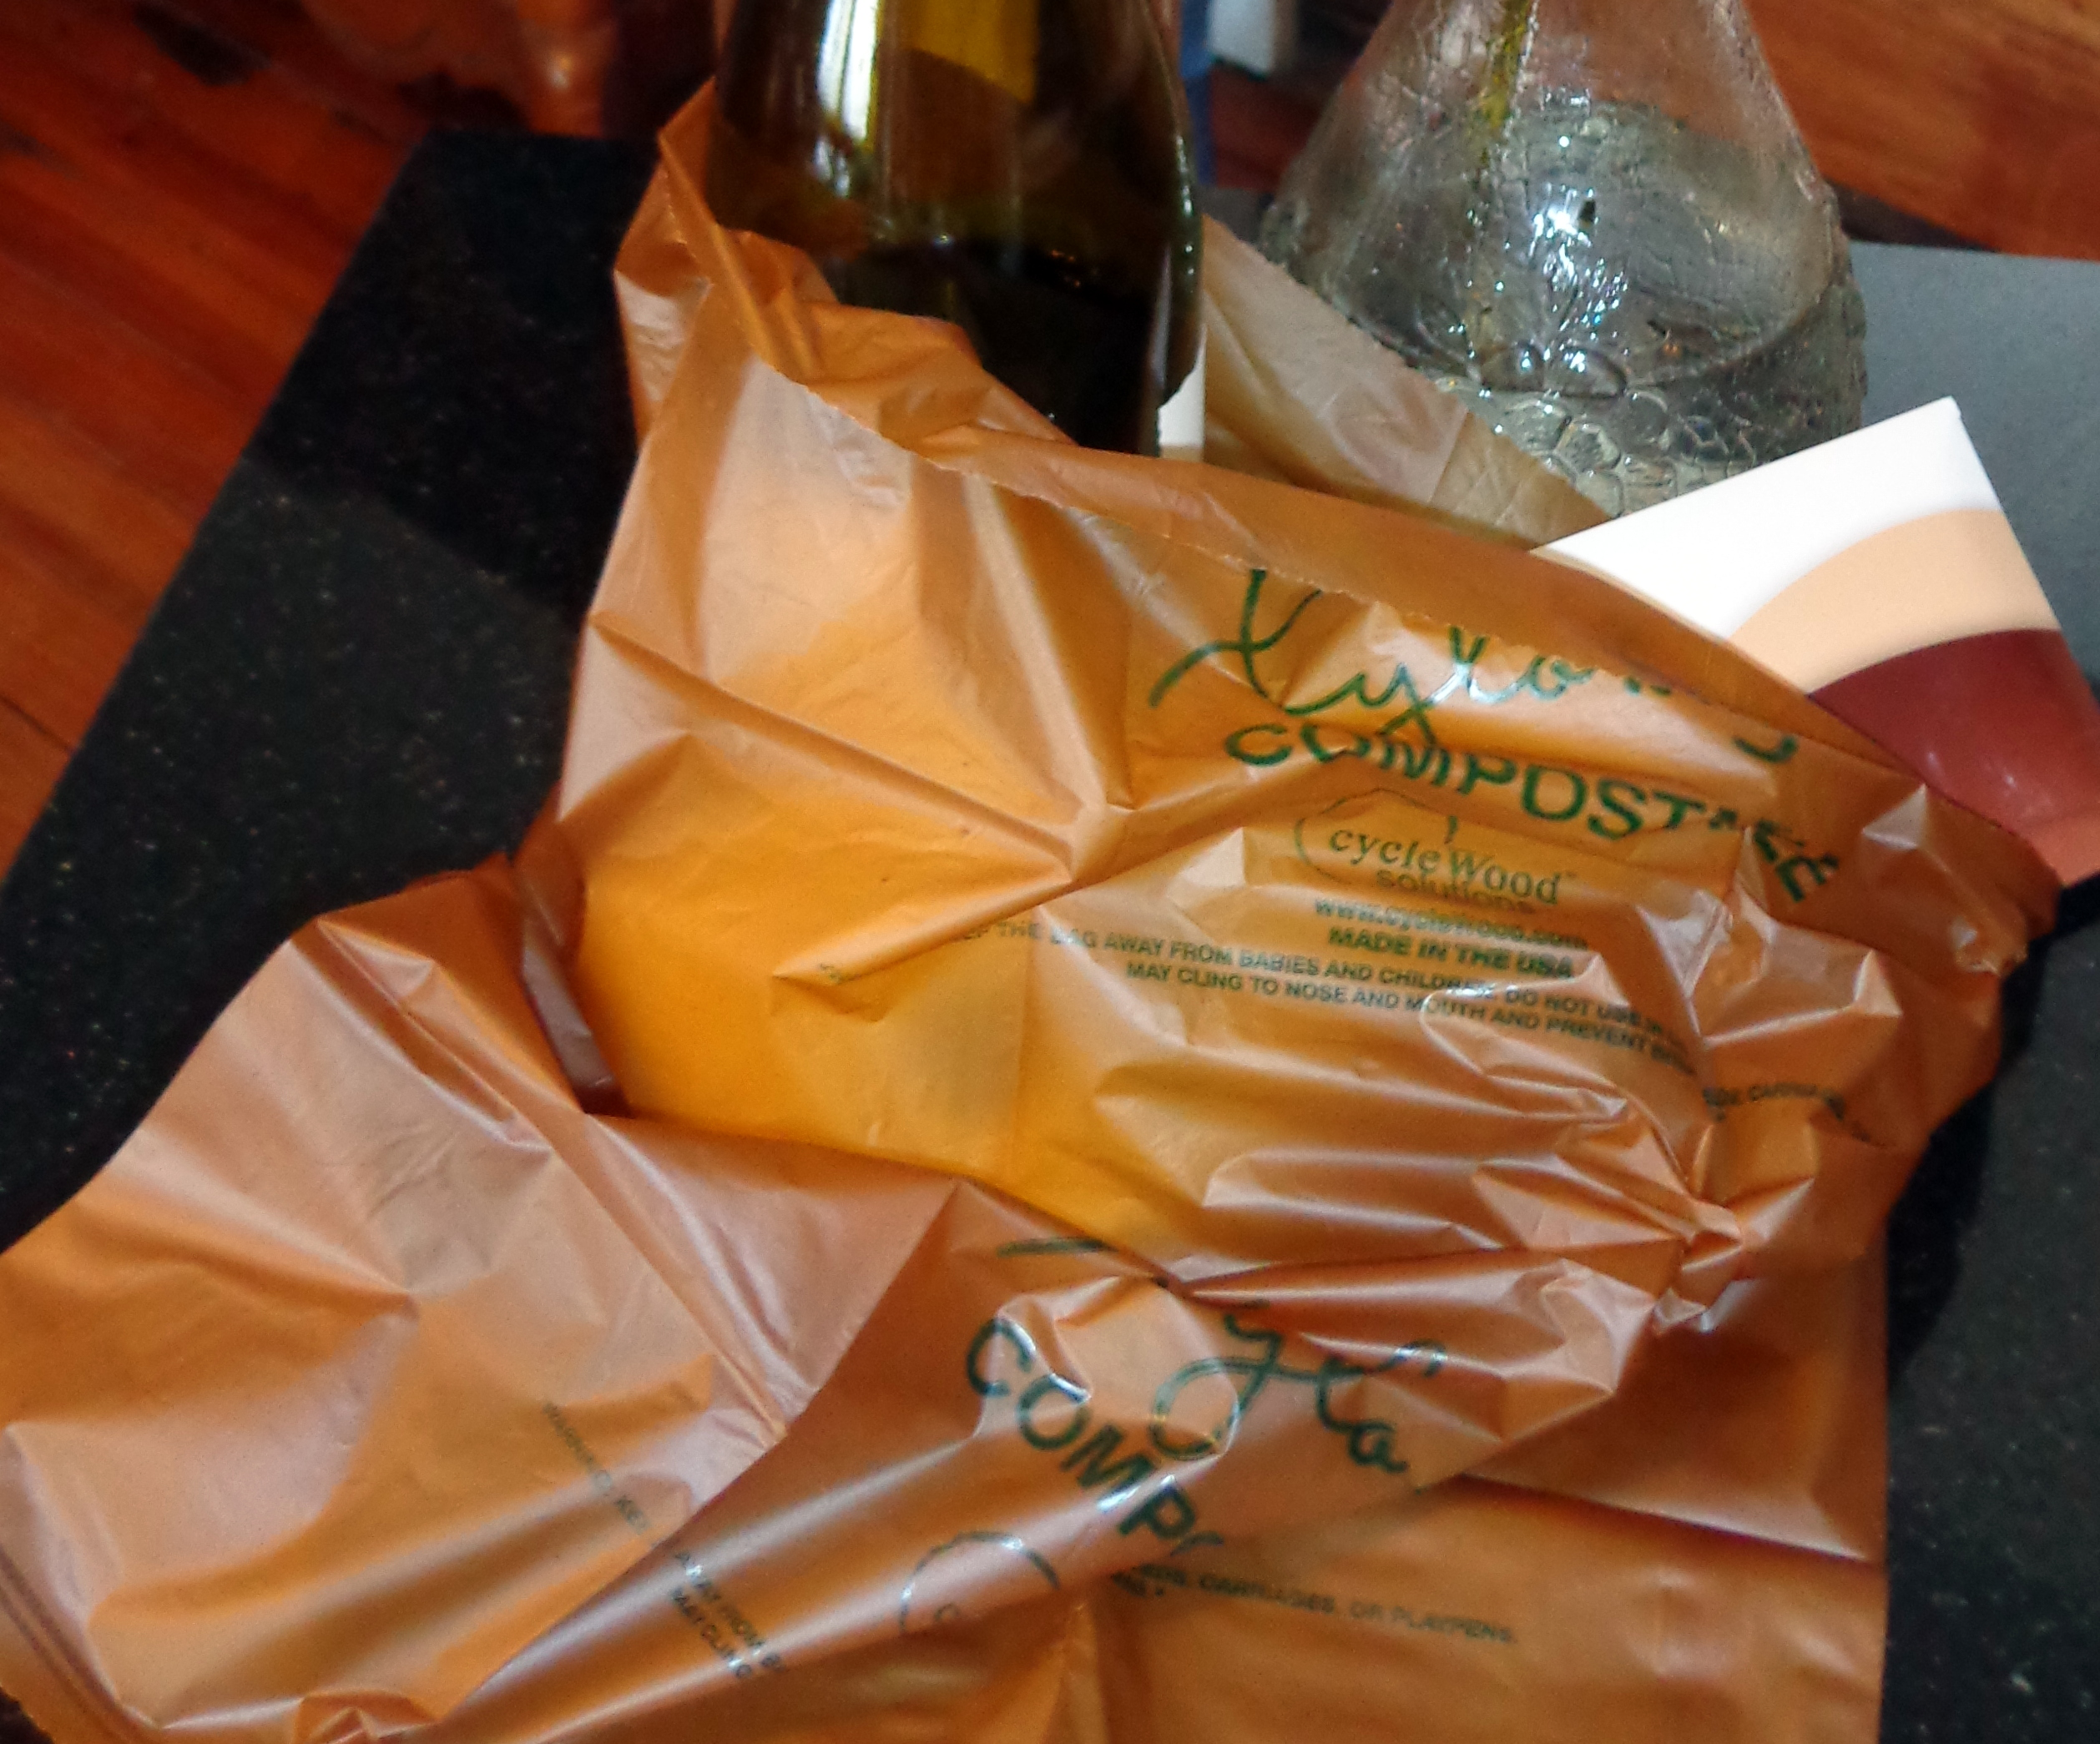 This cycleWood grocery bag will decompose in 180 days when composted.